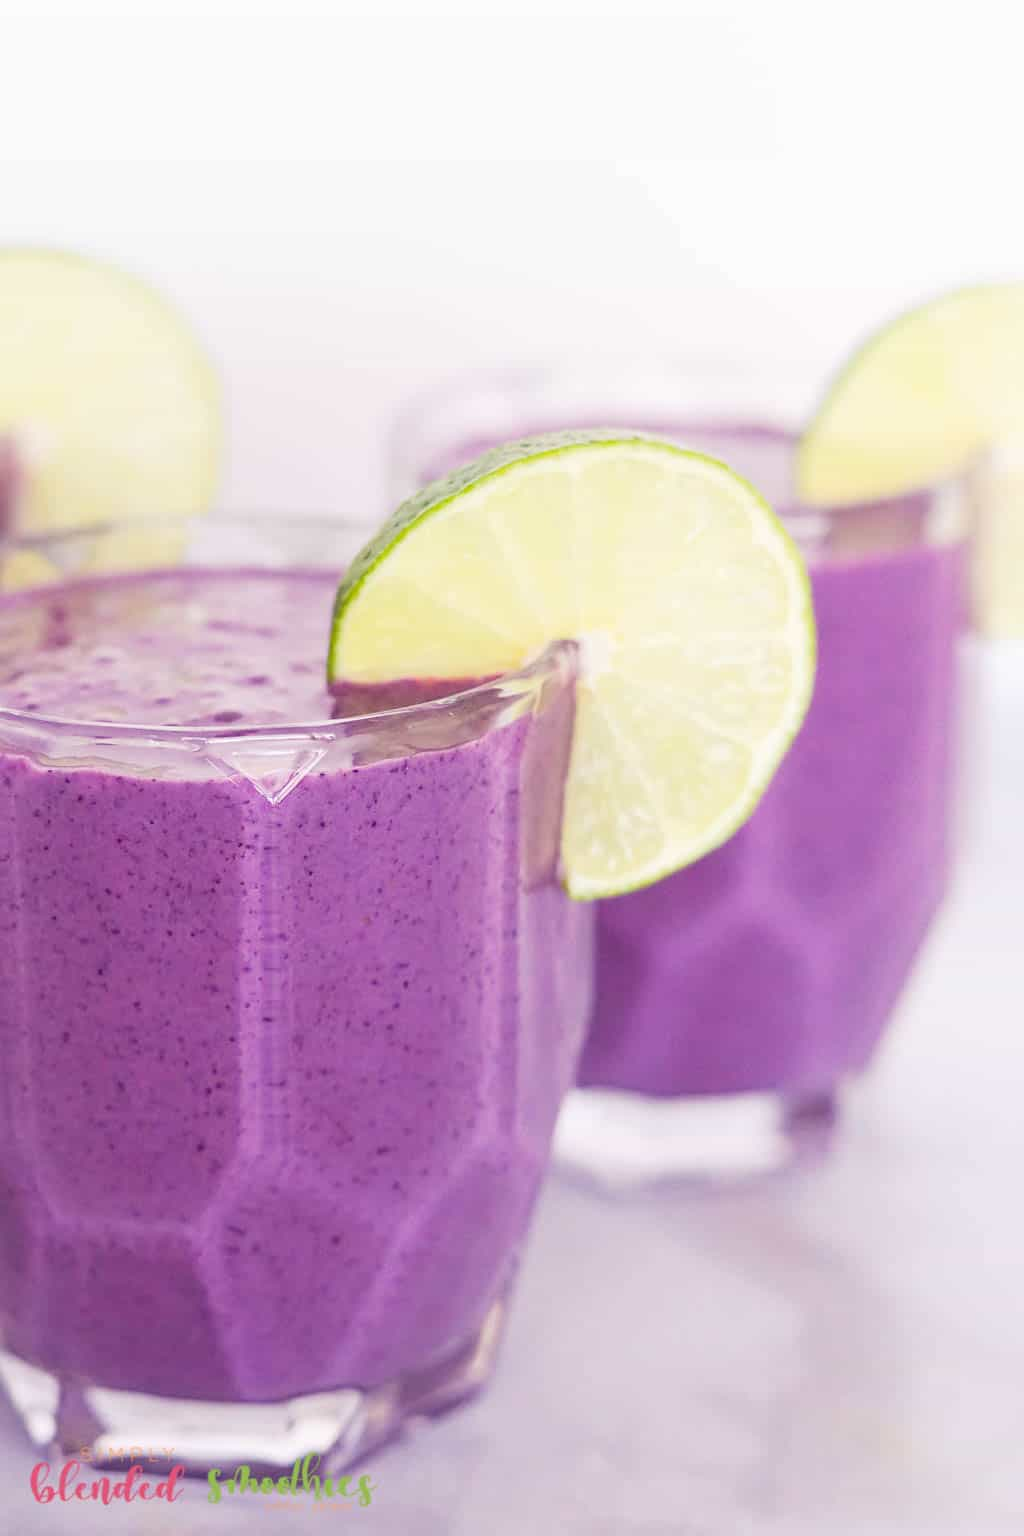 smoothie made with blueberries and banana with a splash of lime